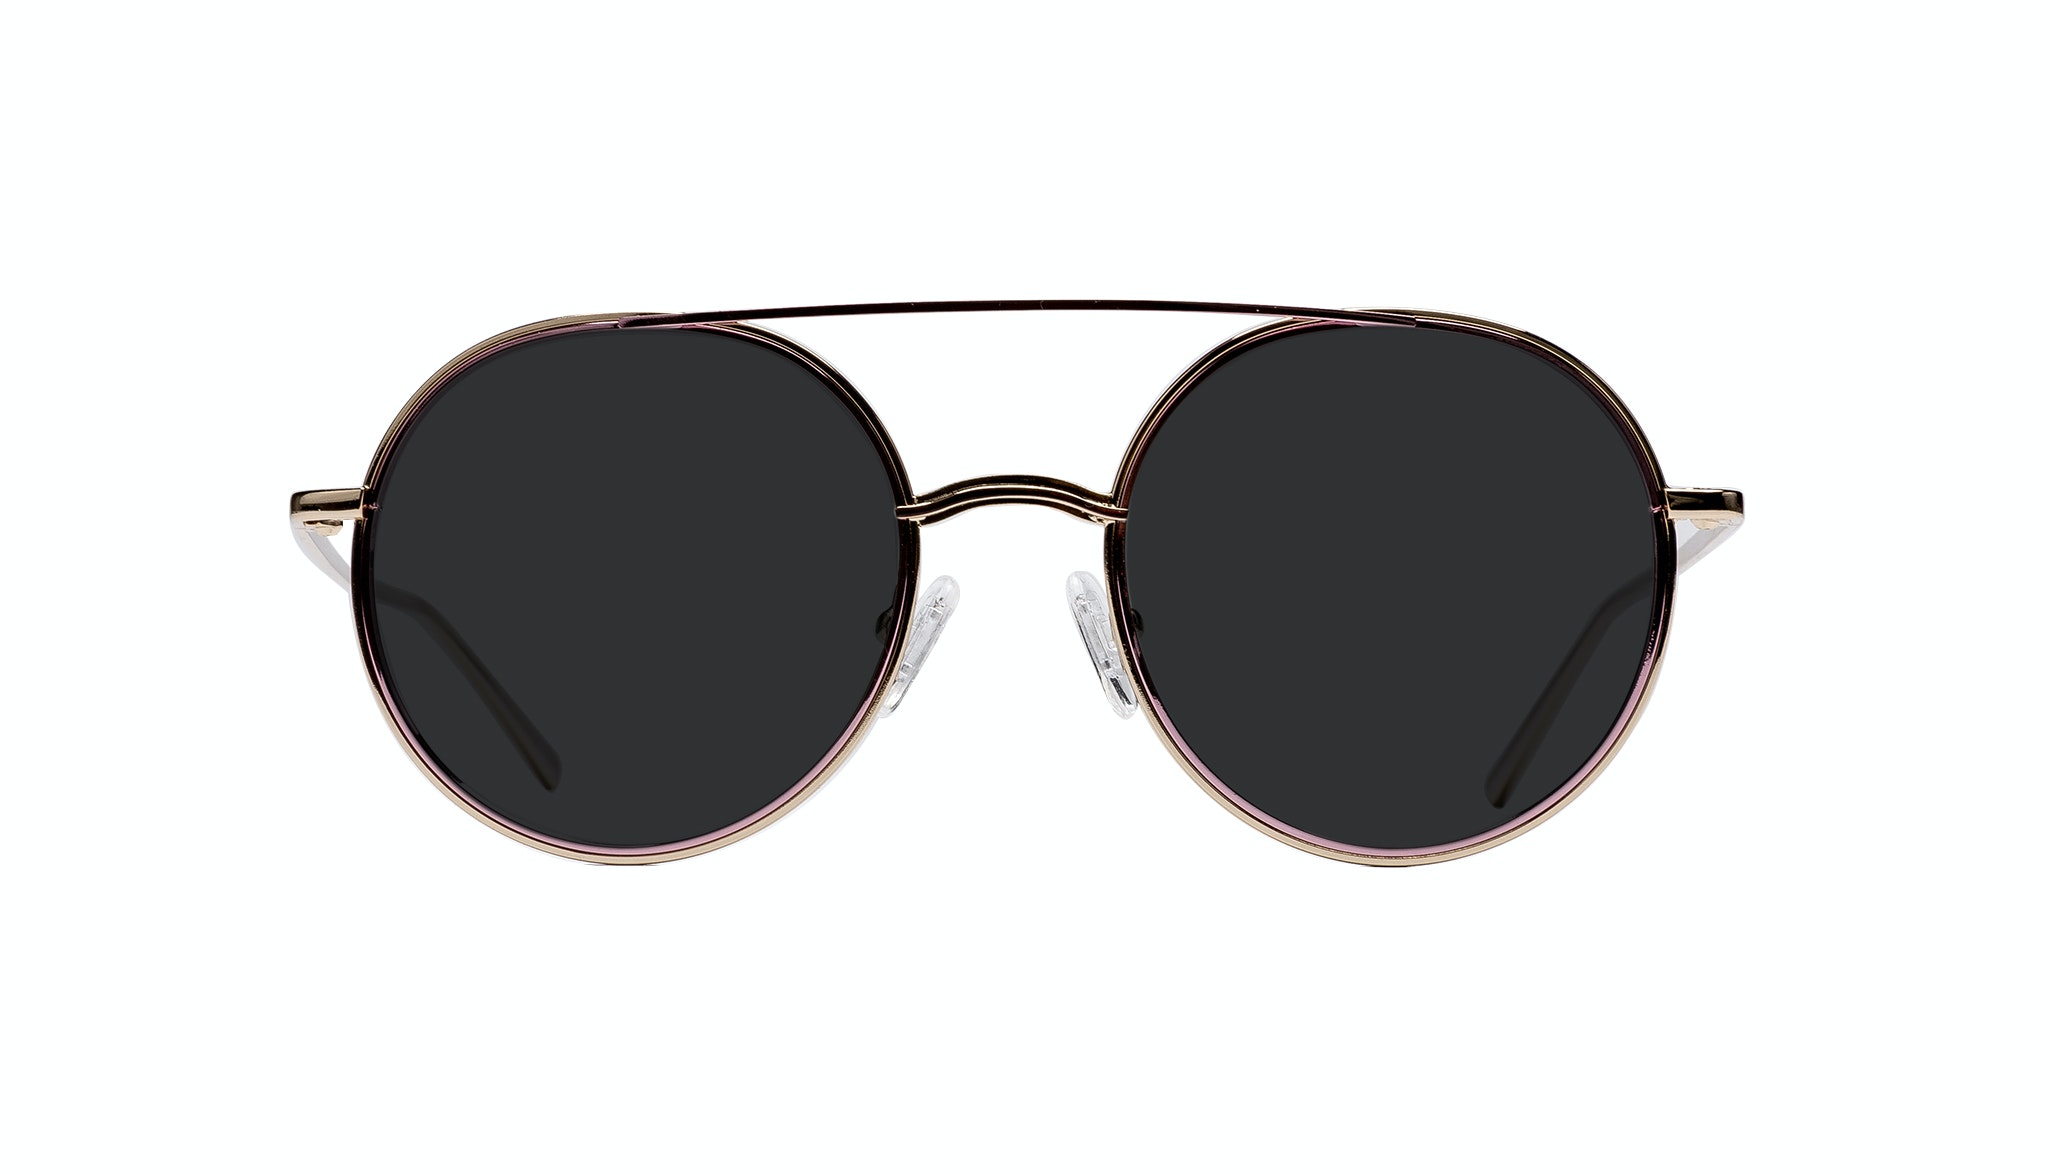 Affordable Fashion Glasses Aviator Sunglasses Women Scarborough 2 Chains Front